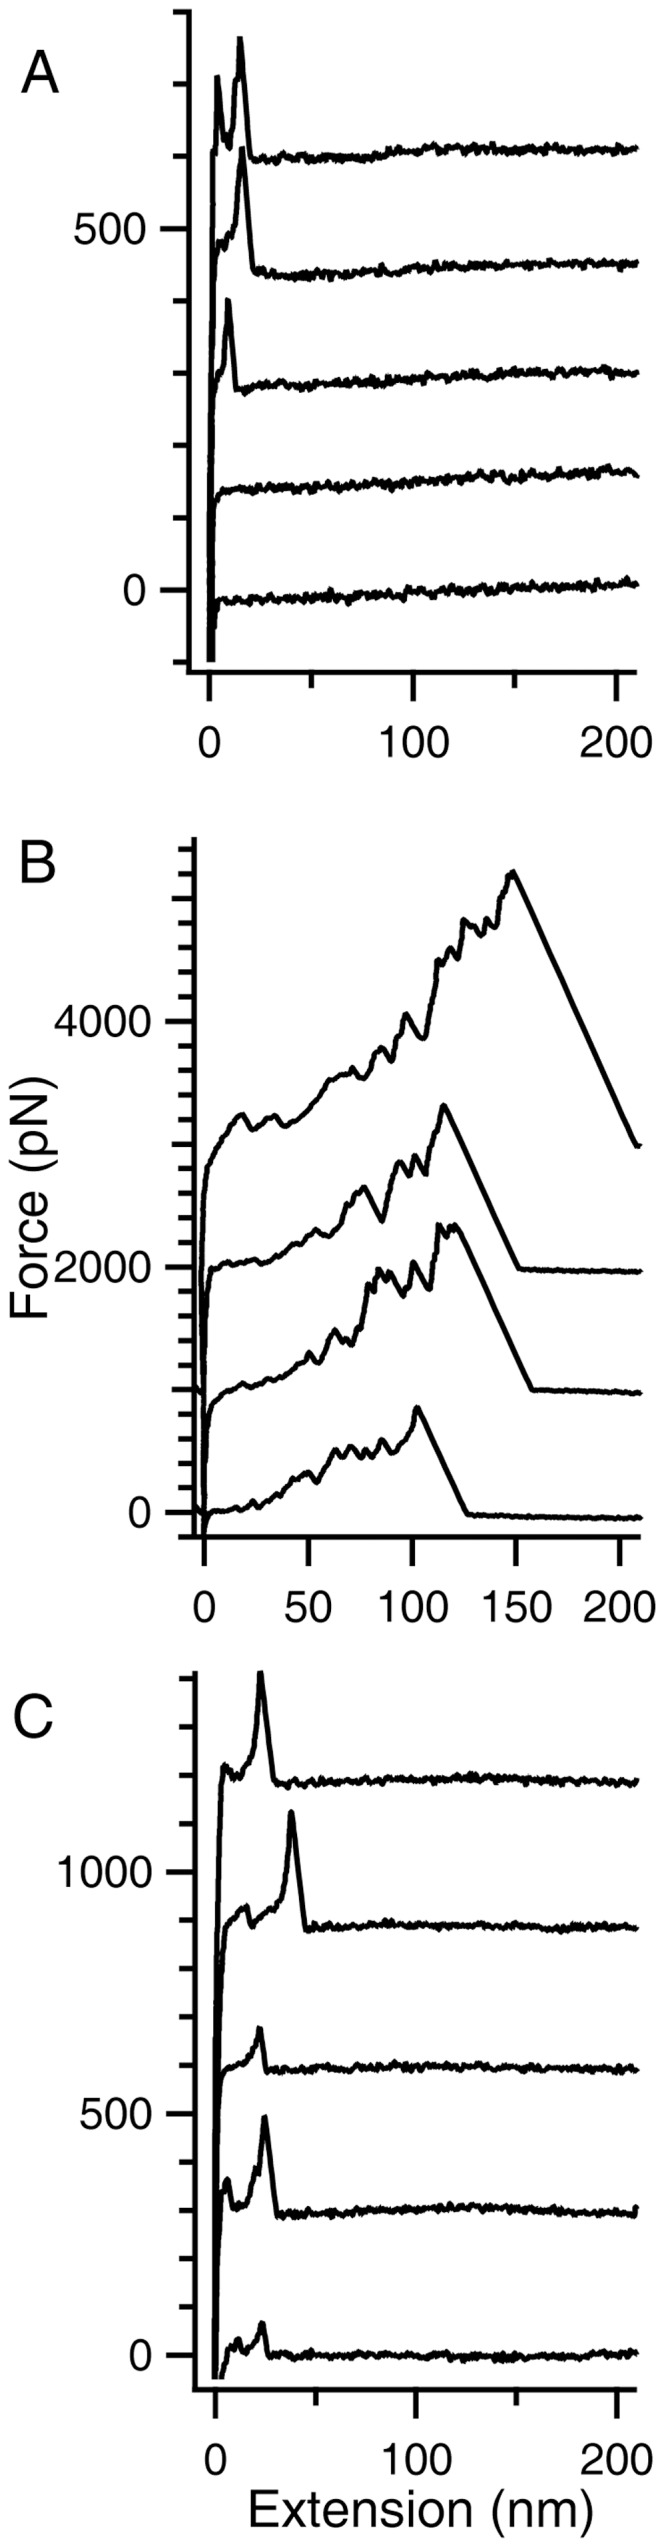 Force-versus-extension (FX) traces of HEWL aggregates from single-molecule force spectroscopy. A) FX traces obtained by repeated approach and retraction of AFM cantilever tip onto the gold coverslip on which 40 µl of freshly prepared HEWL at pH 12.2 was added. Each trace is offset by 150 pN, with respect to the previous trace. B) Representative FX traces obtained by pulling HEWL aggregates formed after 4 days of incubation at pH 12.2. Each trace is offset by 1000 pN with respect to the previous one. See Figure S3 for more traces under this condition. C) FX traces of HEWL at pH 12.2 incubated with iodoacetamide at a final concentration of 12 mM for 3 days.